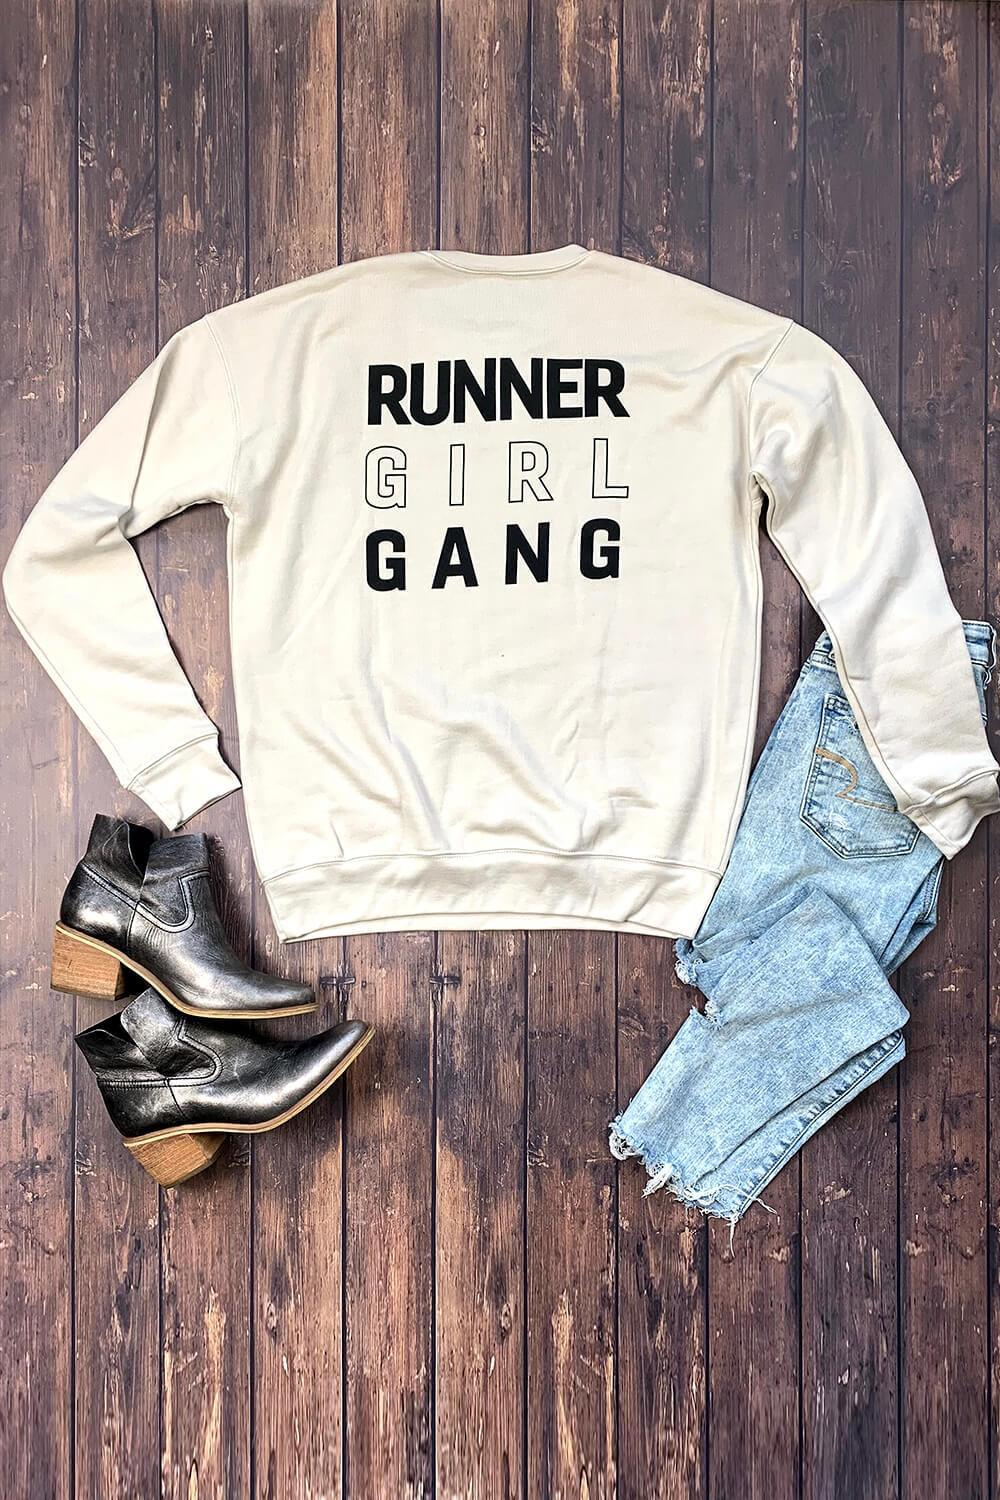 Runner Girl Gang Sweatshirt - Sarah Marie Design Studio